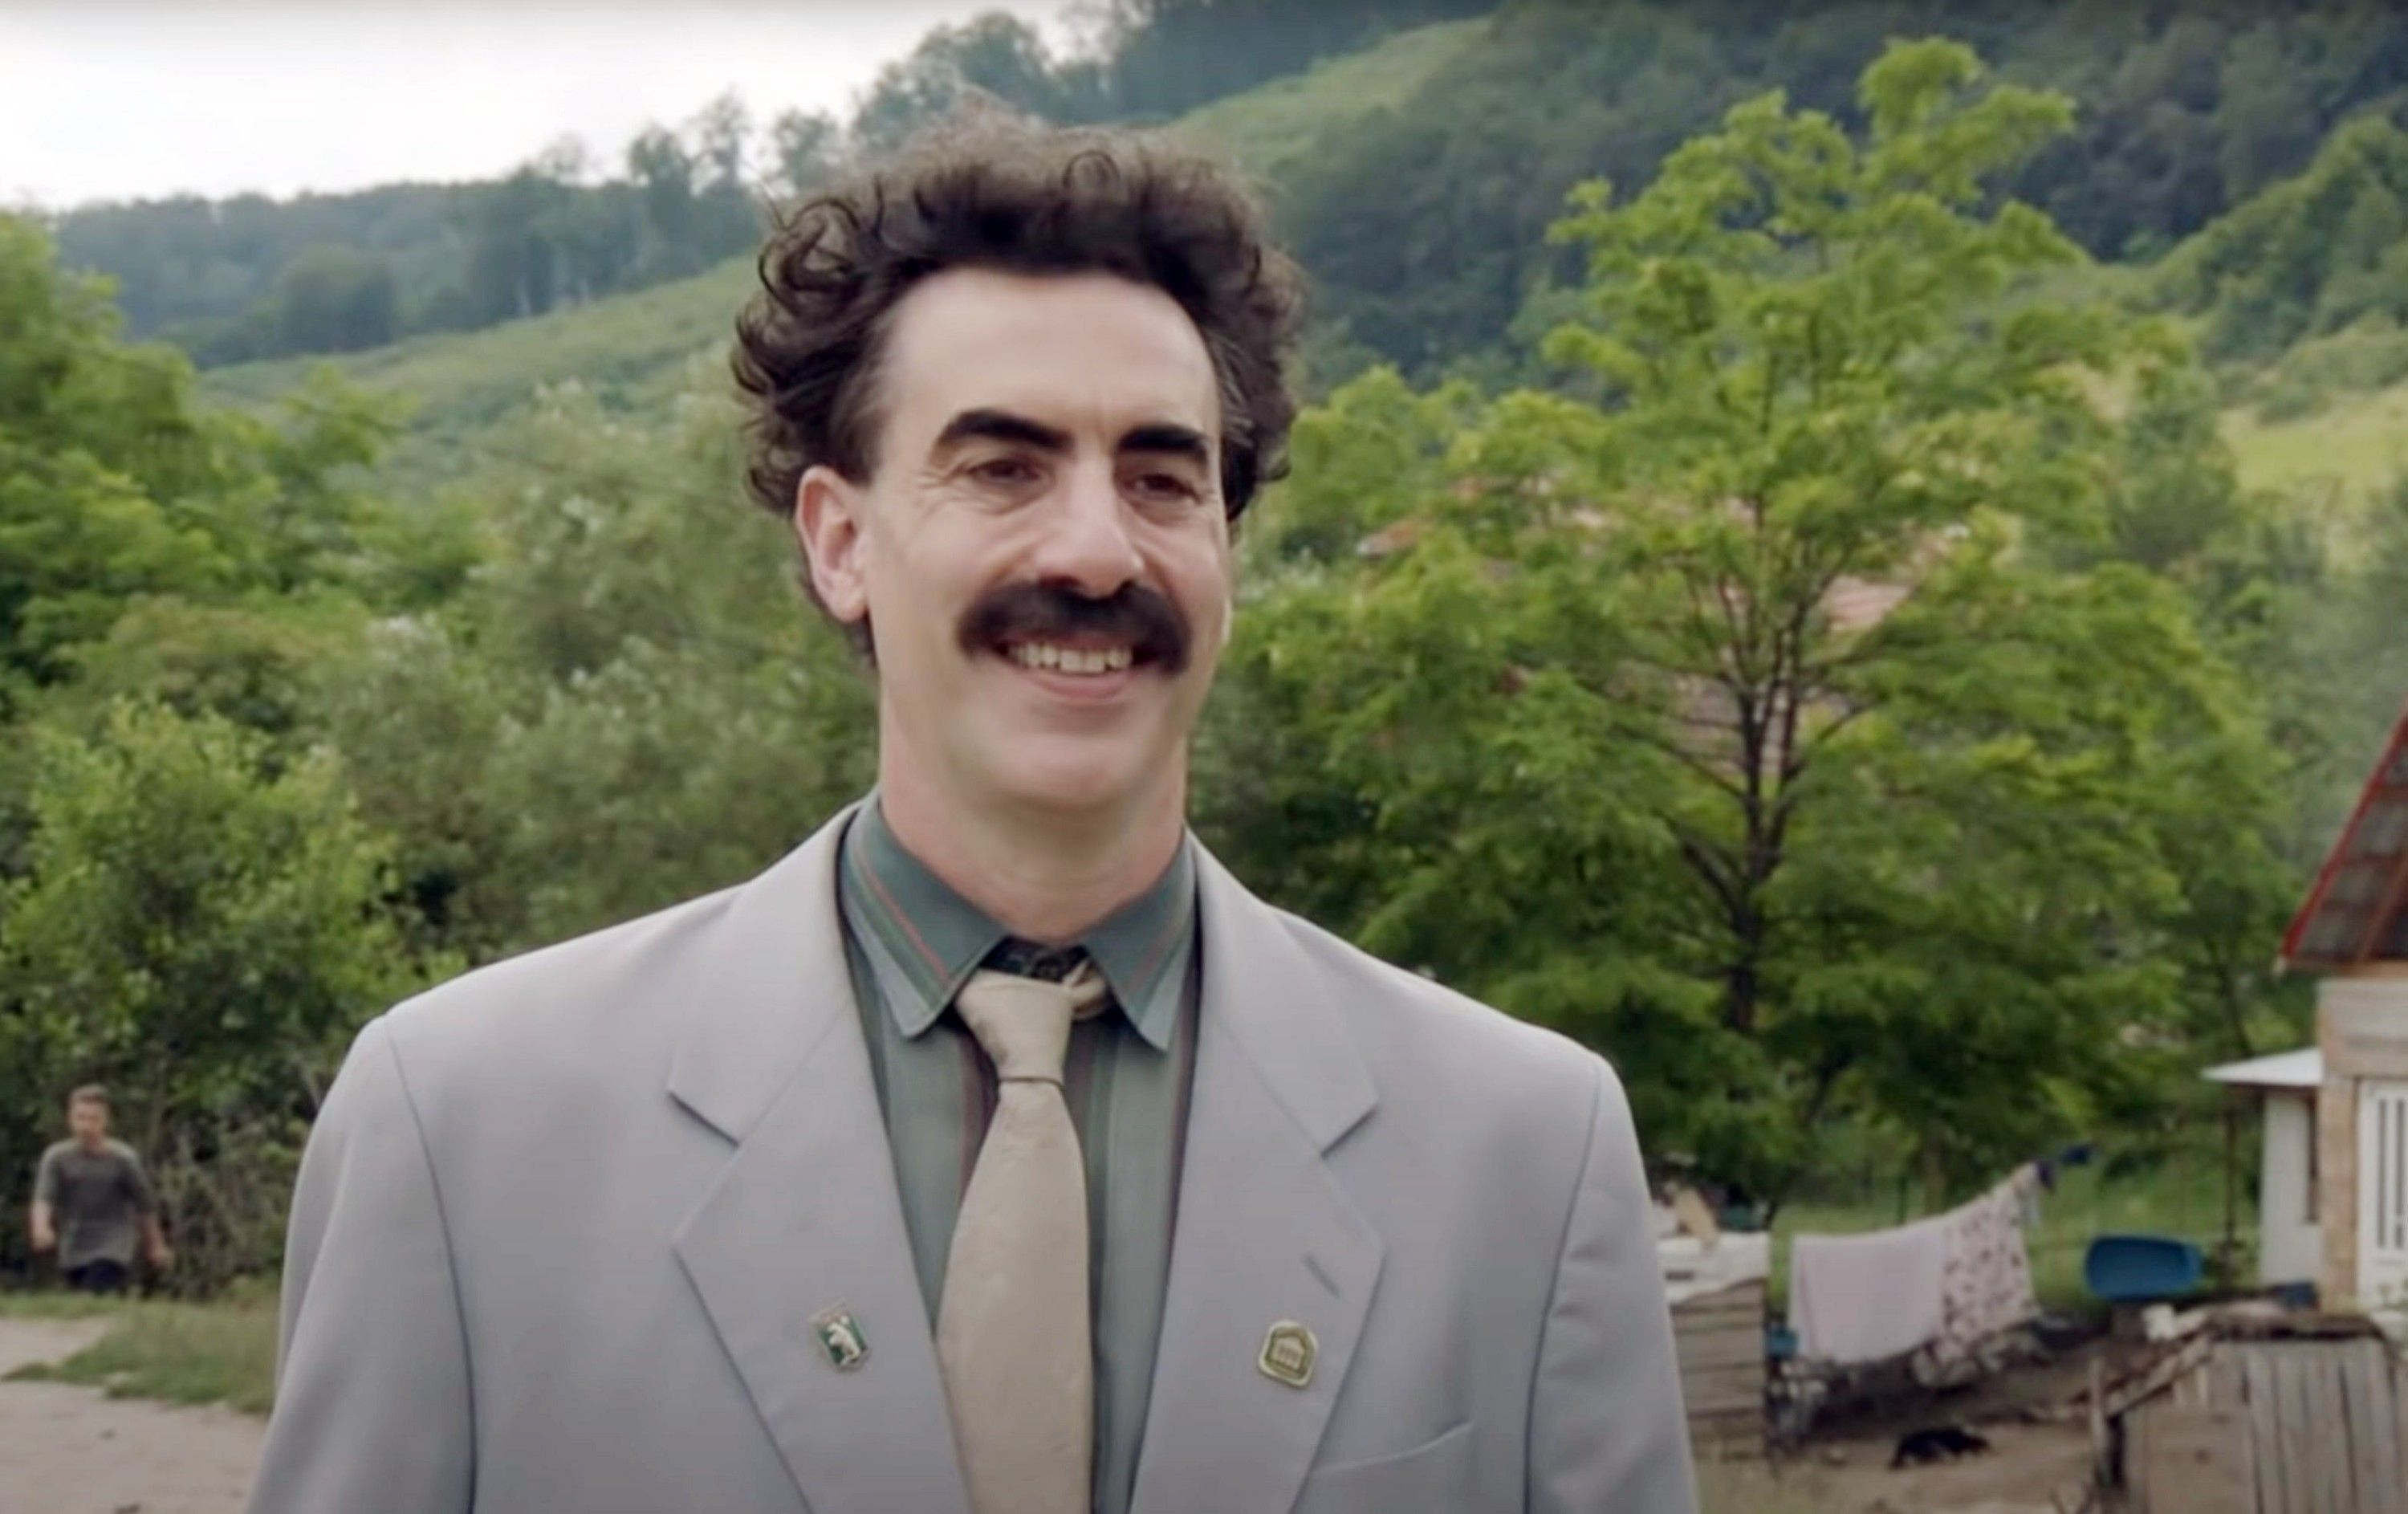 Borat Subsequent Moviefilm is a constant tug-of-war between comic genius and lowbrow stupidity, often at the same time.